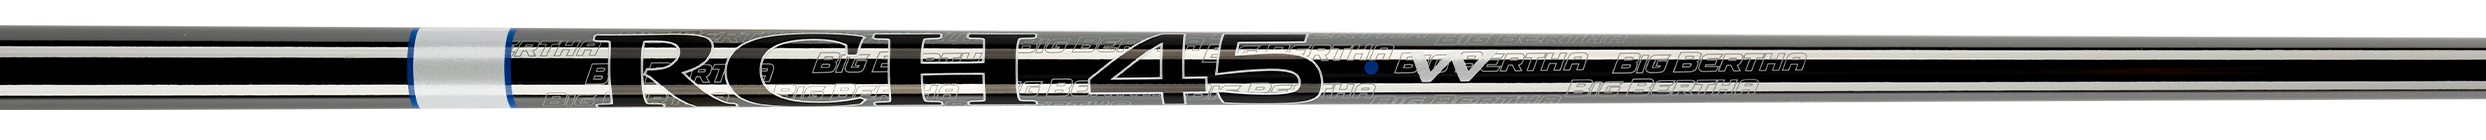 RCH 45 Graphite Women's Shaft